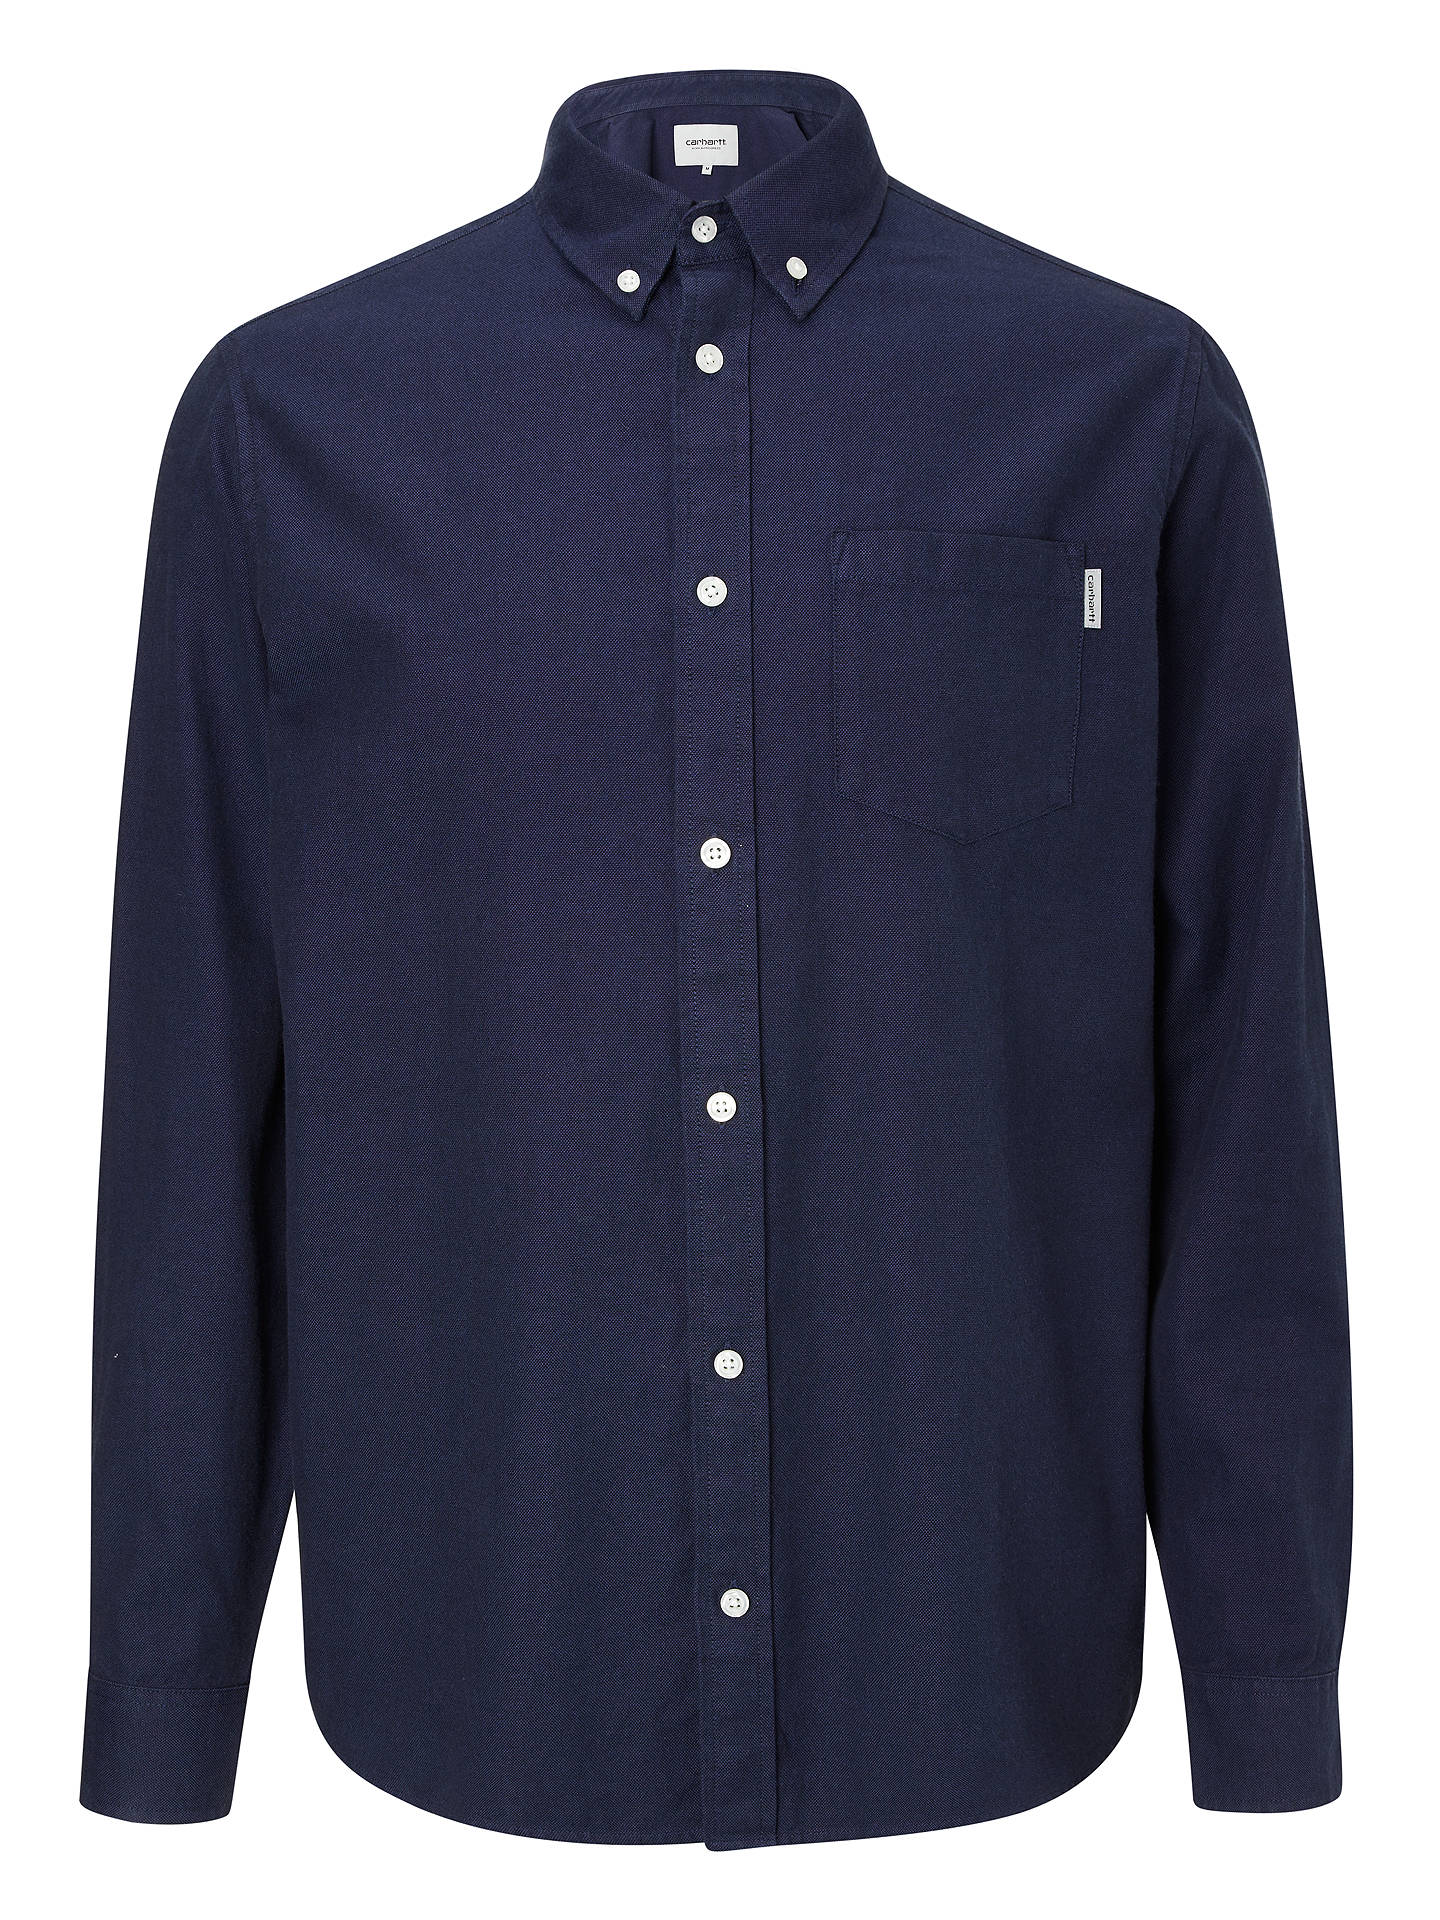 BuyCarhartt WIP Dalton Cotton Oxford Flannel Shirt, Dark Navy, S Online at johnlewis.com